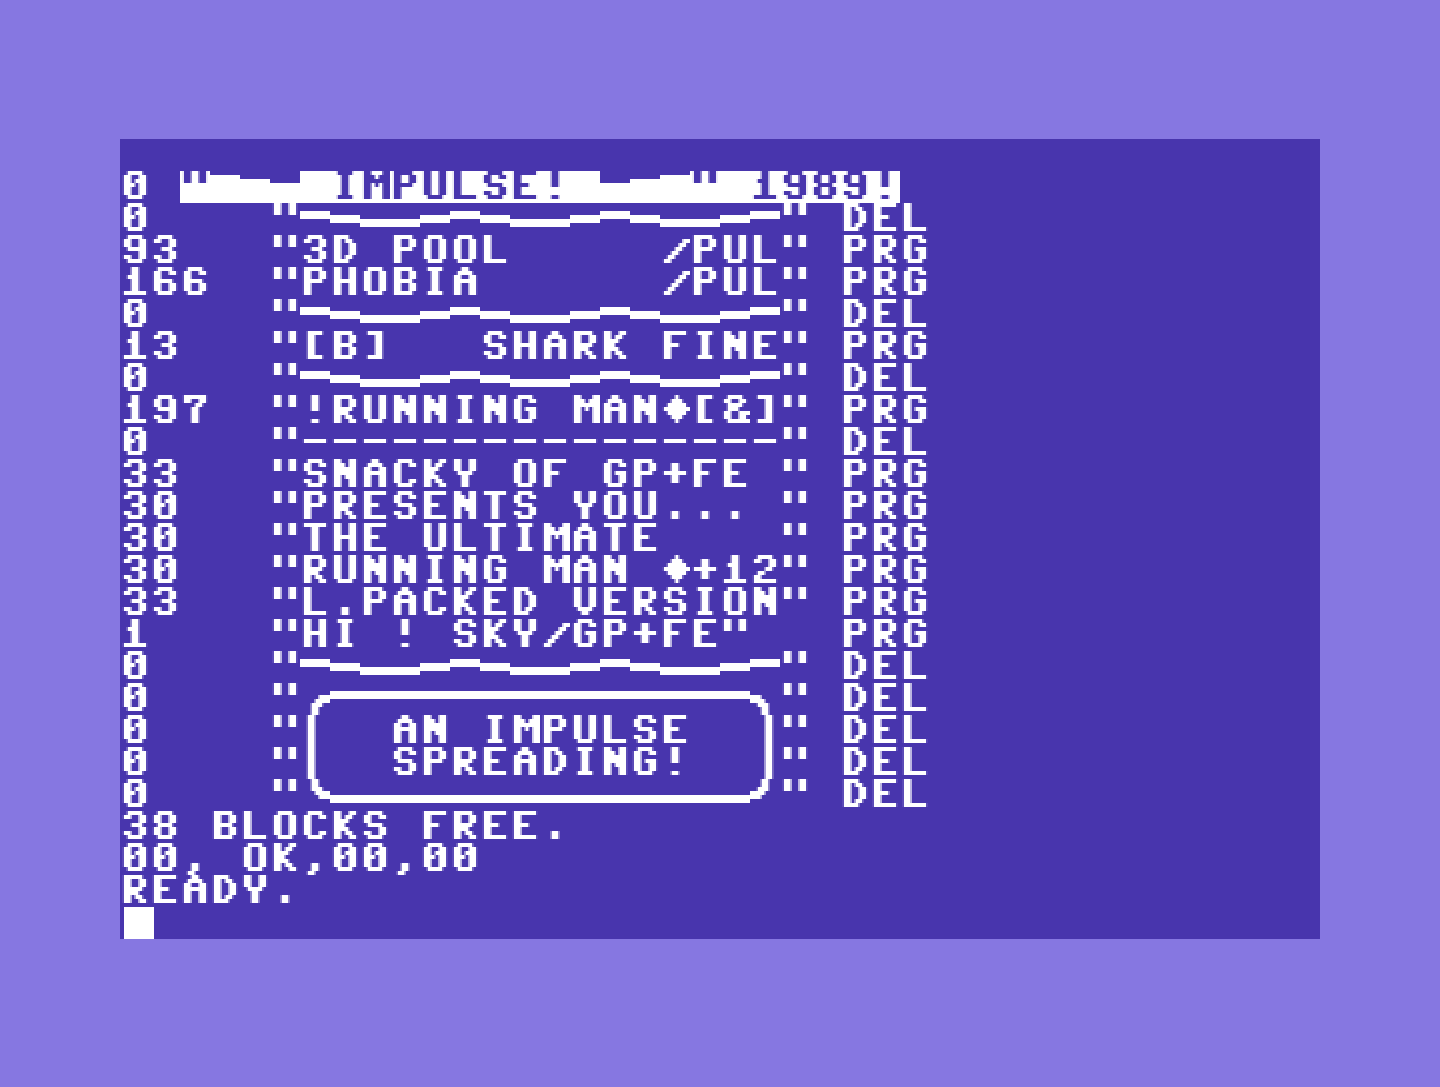 C64 screenshot, view of a directory list